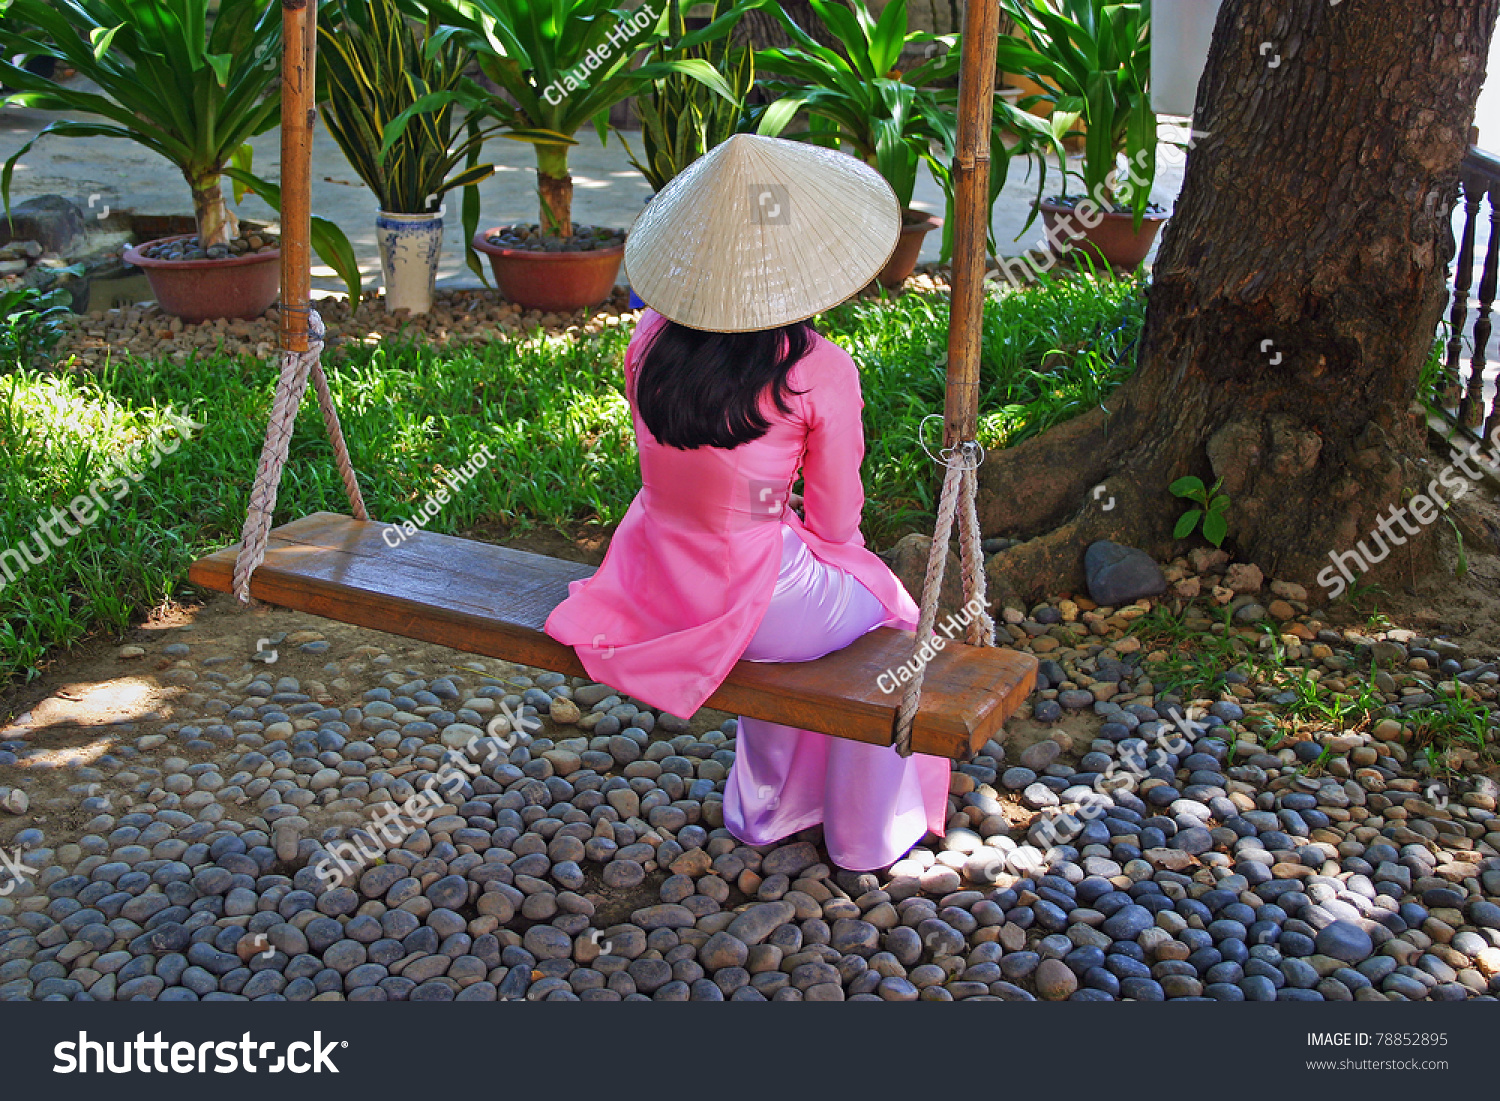 Woman in a national costume on a swing in Vietnam